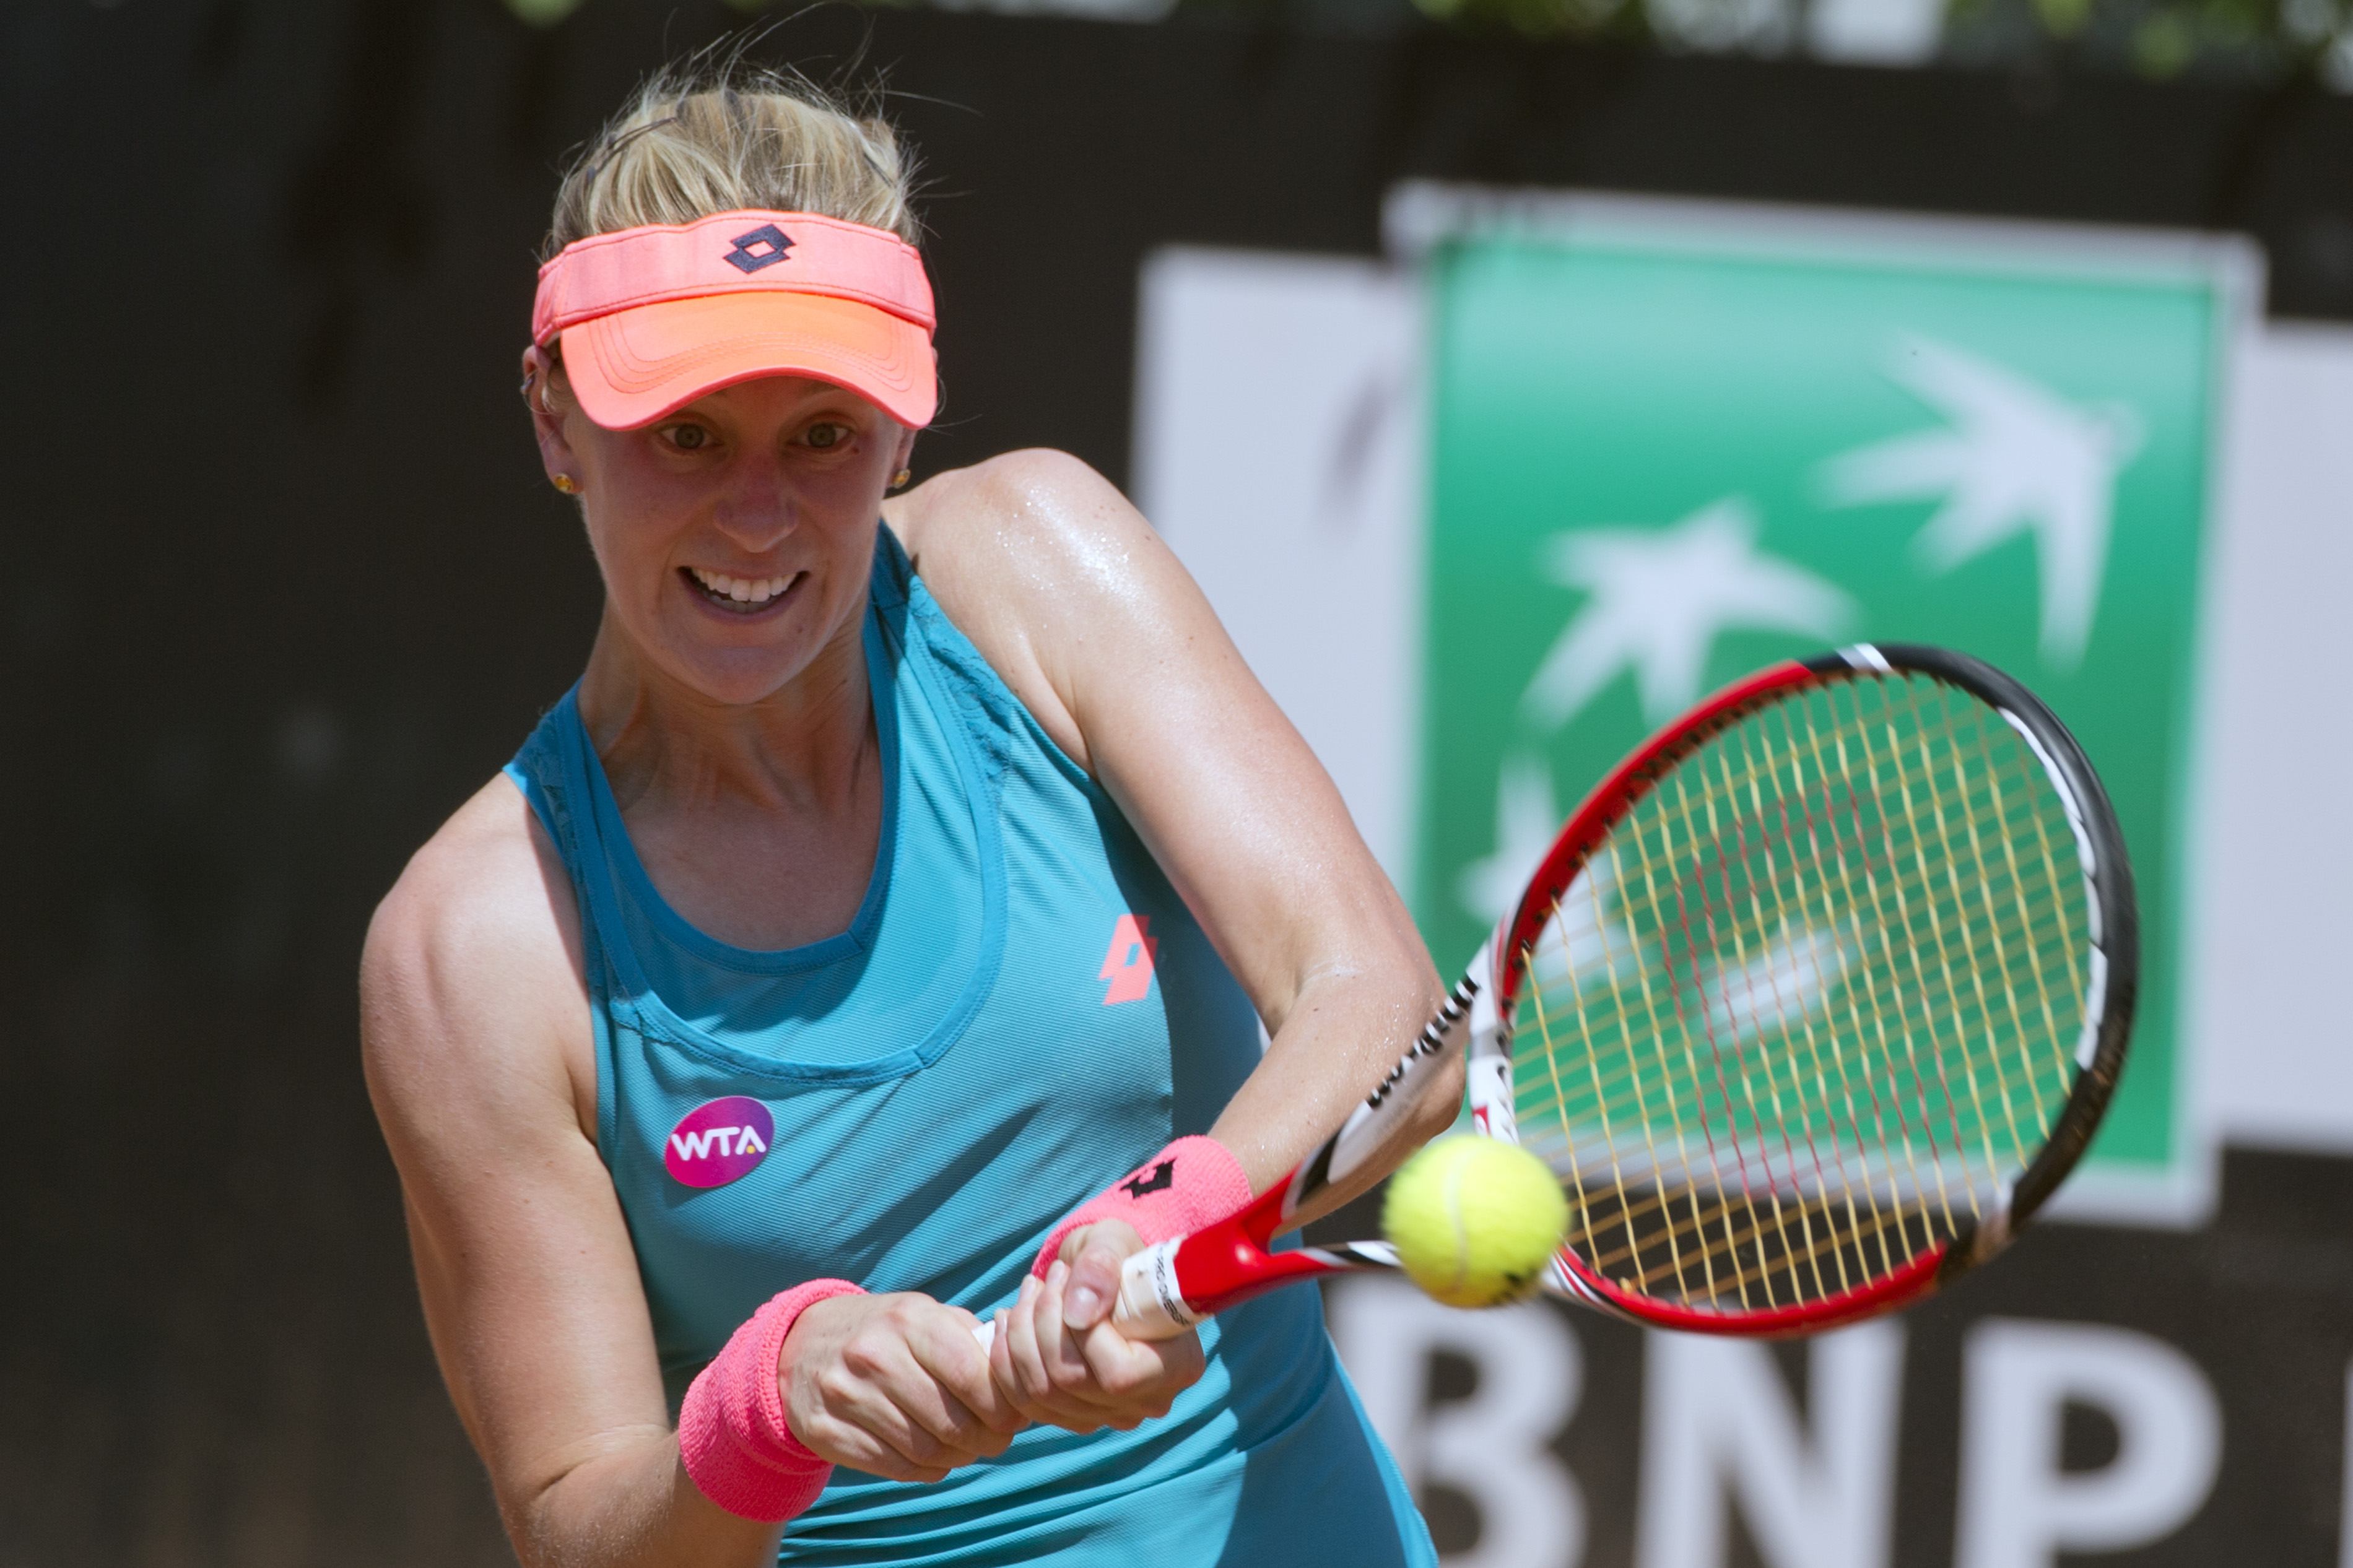 Alison Riske, of the United States, returns the ball to Simona Halep, of Romania, during their match at the Italian Open tennis tournament, in Rome, Wednesday, May 13, 2015. (AP Photo/Andrew Medichini)